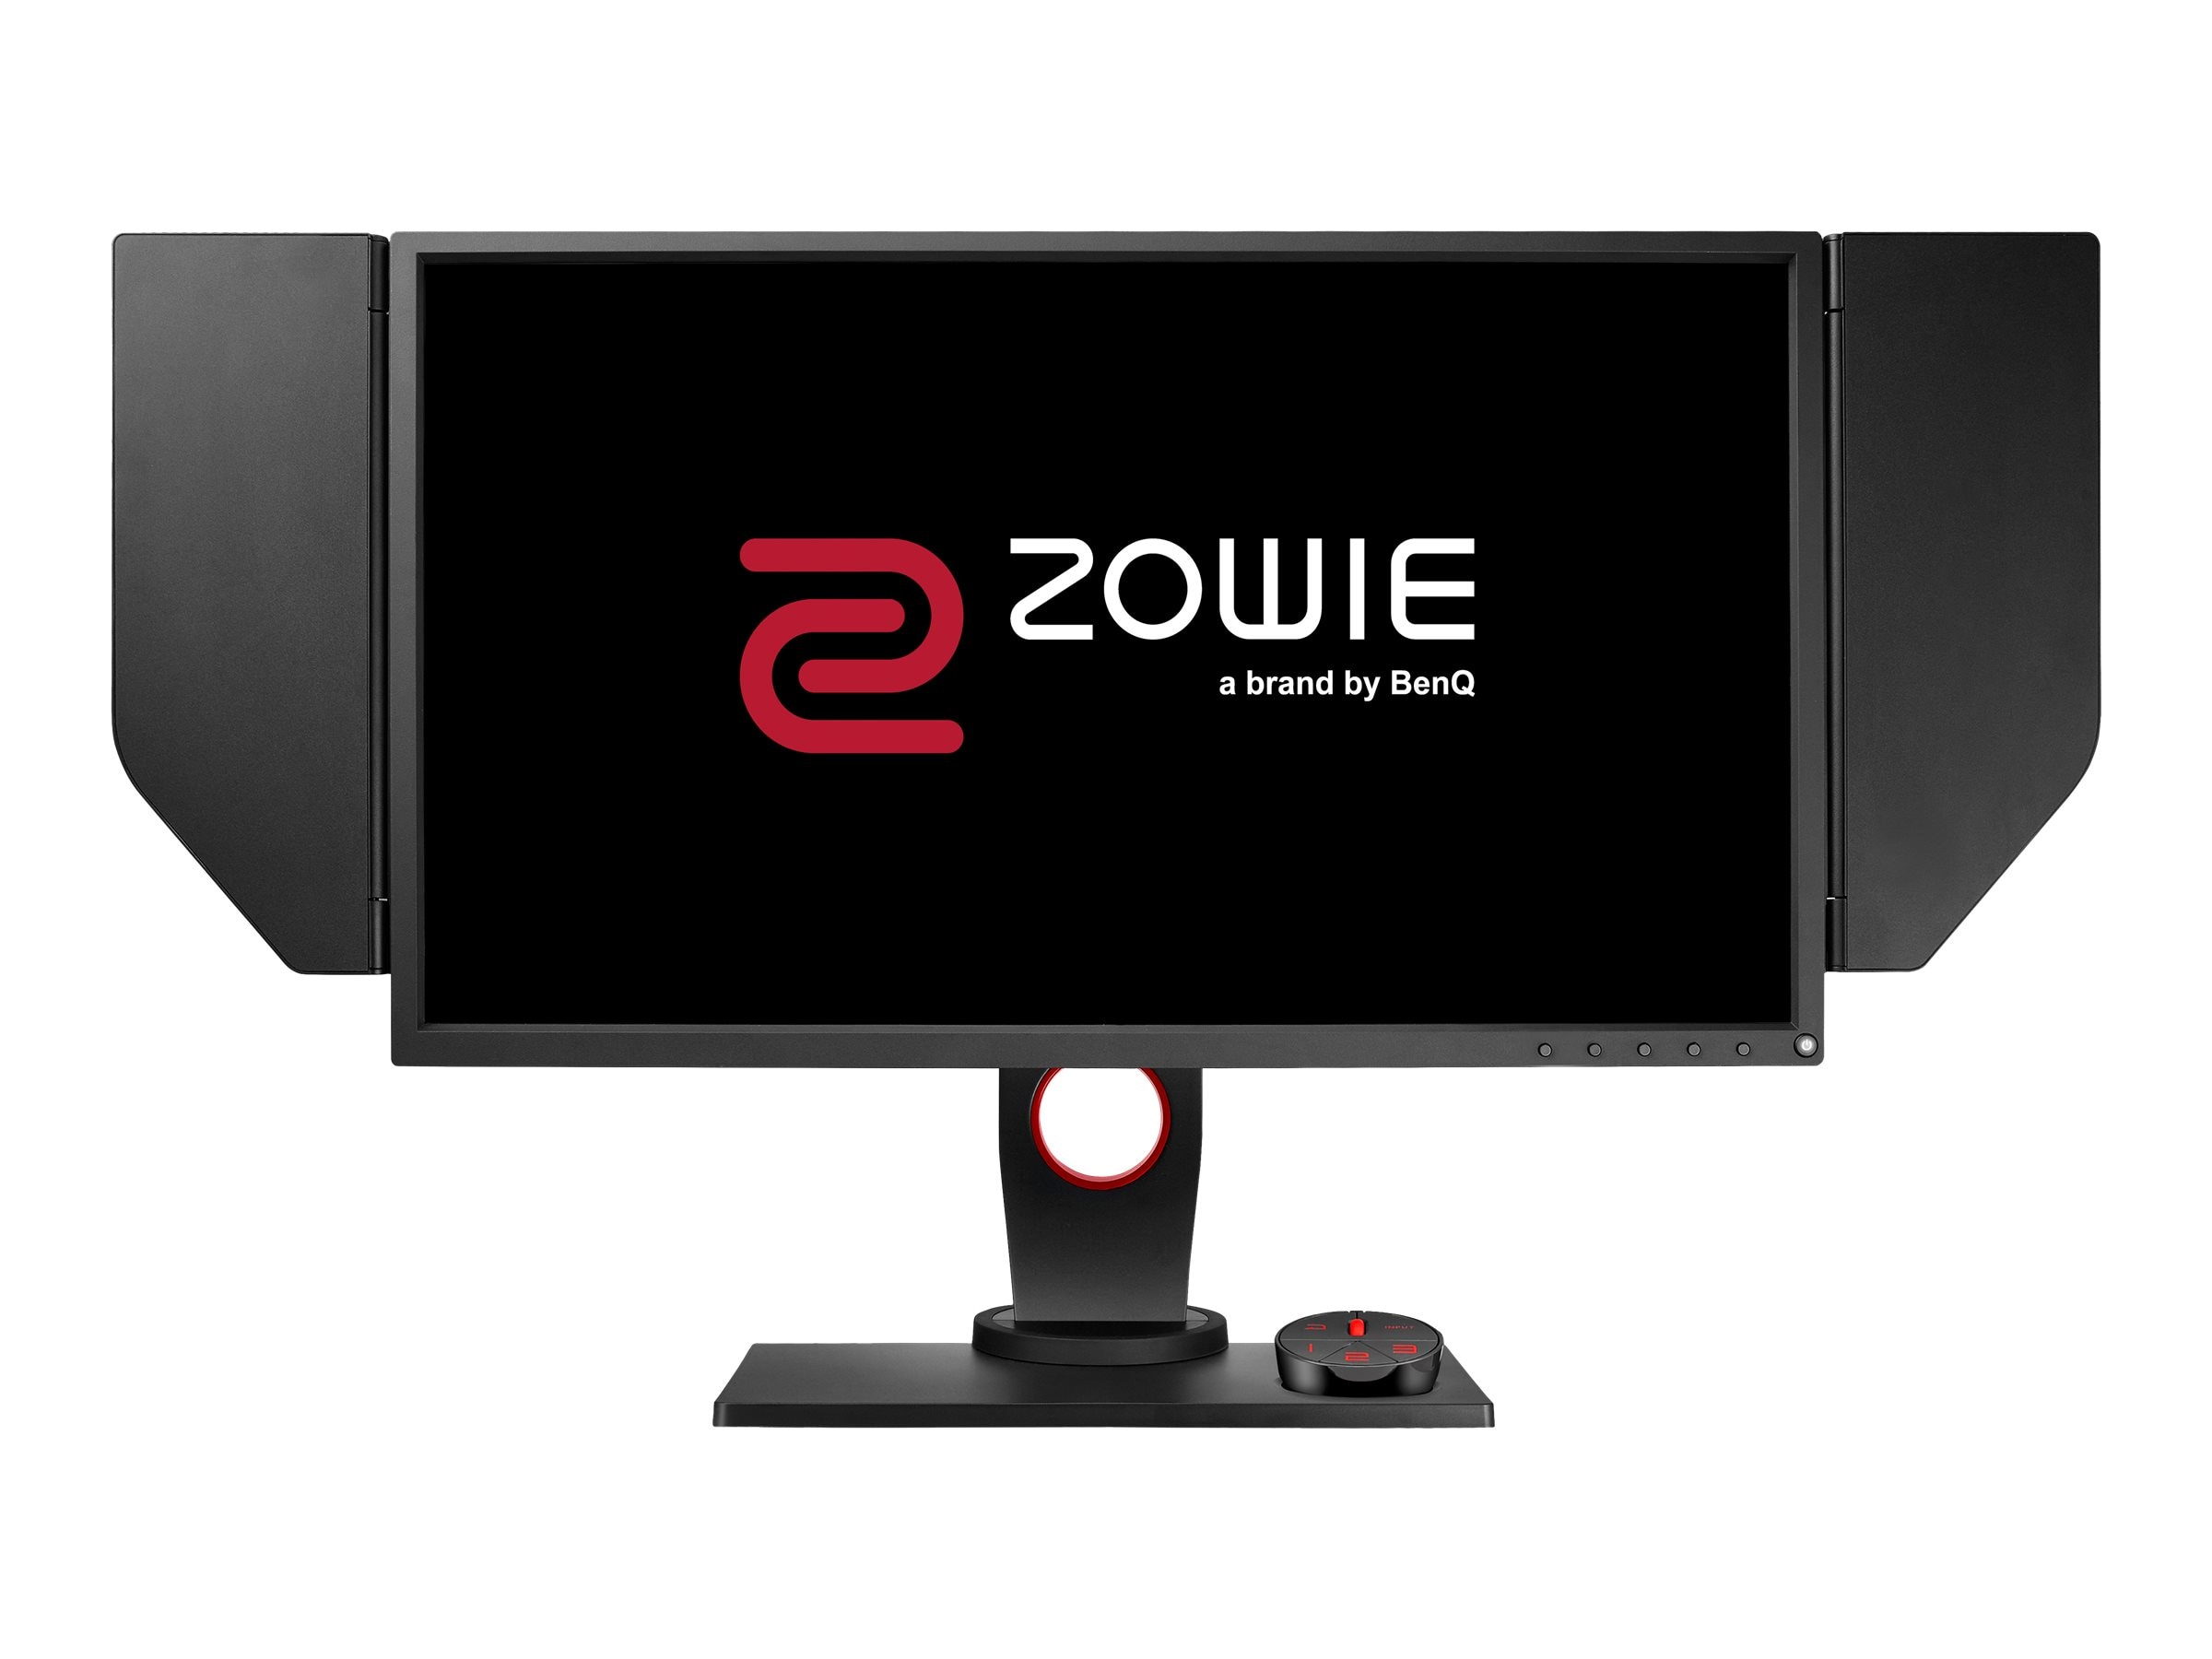 Benq 25 XL2540 LED-LCD Monitor, Black